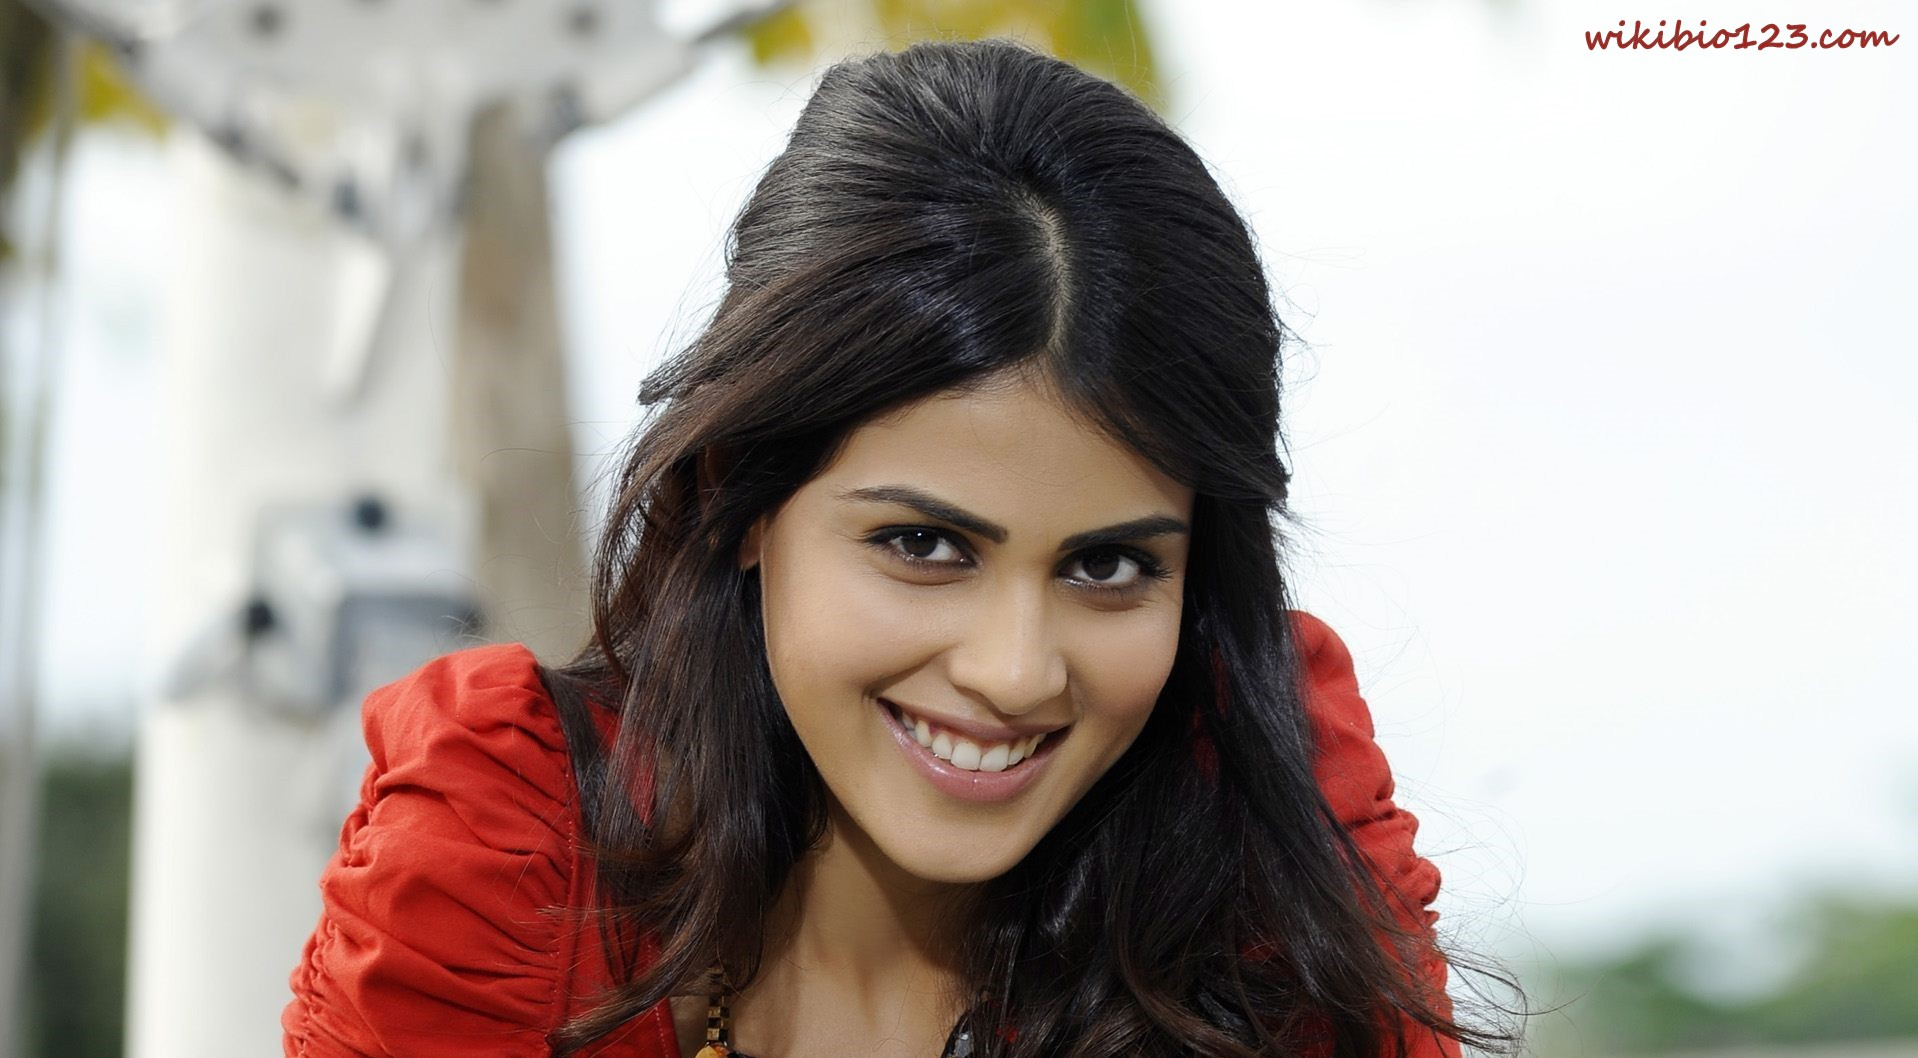 Genelia D'Souza wiki Bio Age Figure size Height HD Images Wallpapers Download